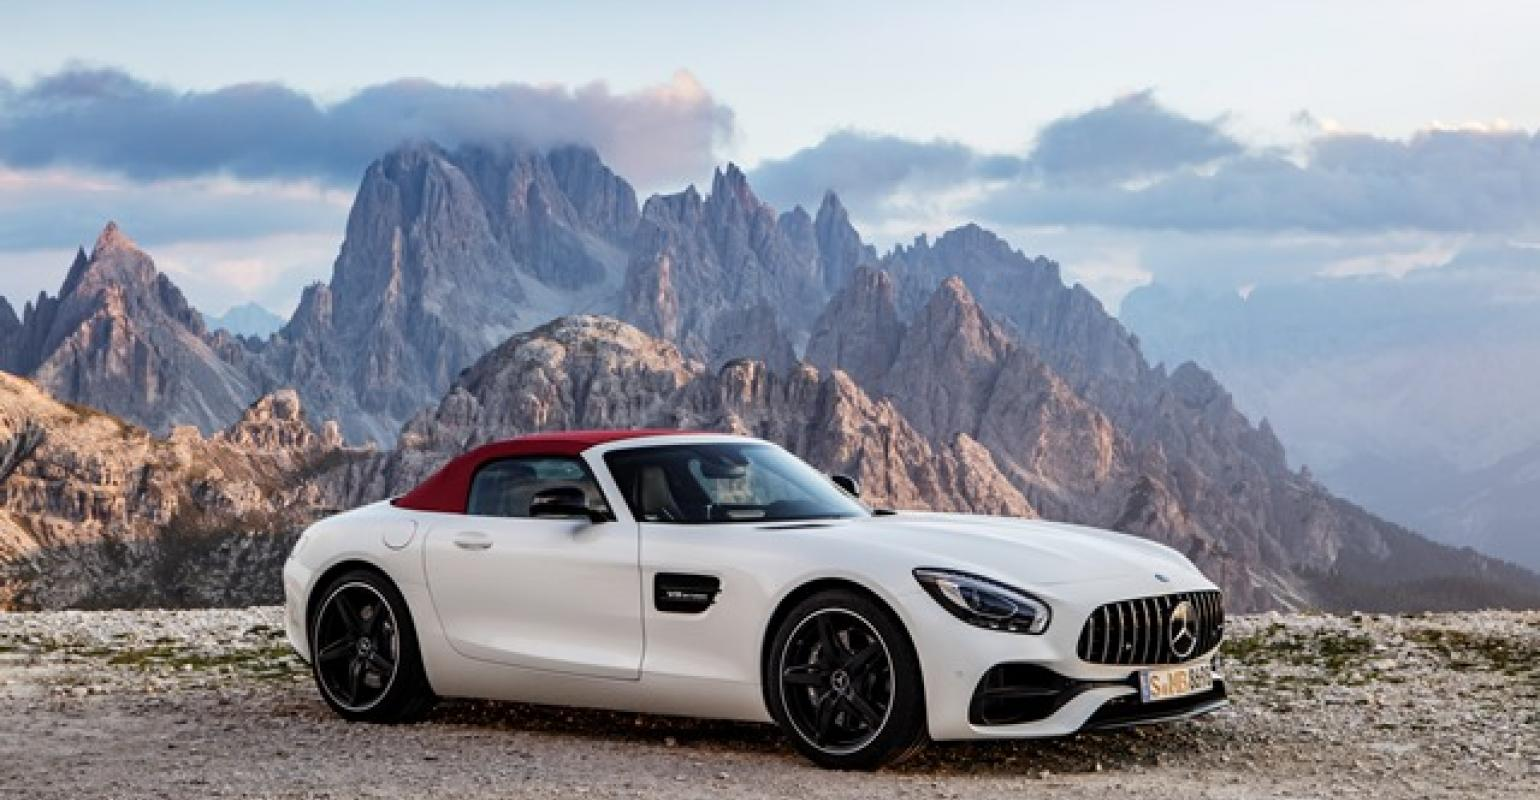 Amg Gt Roadster >> Wraps Come Off Mercedes Amg Gt Roadster Wardsauto